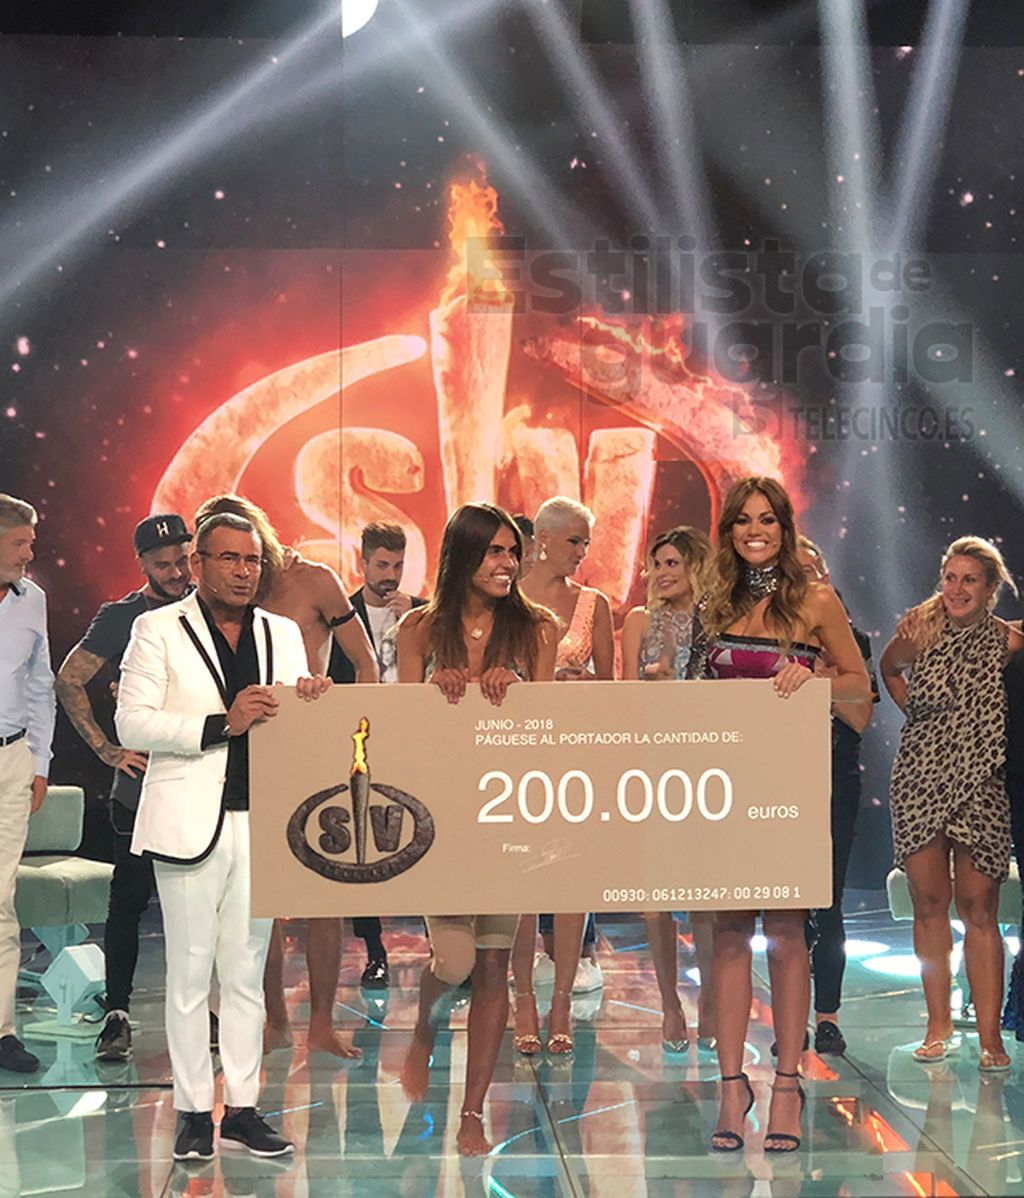 La final de Supervivientes 2018